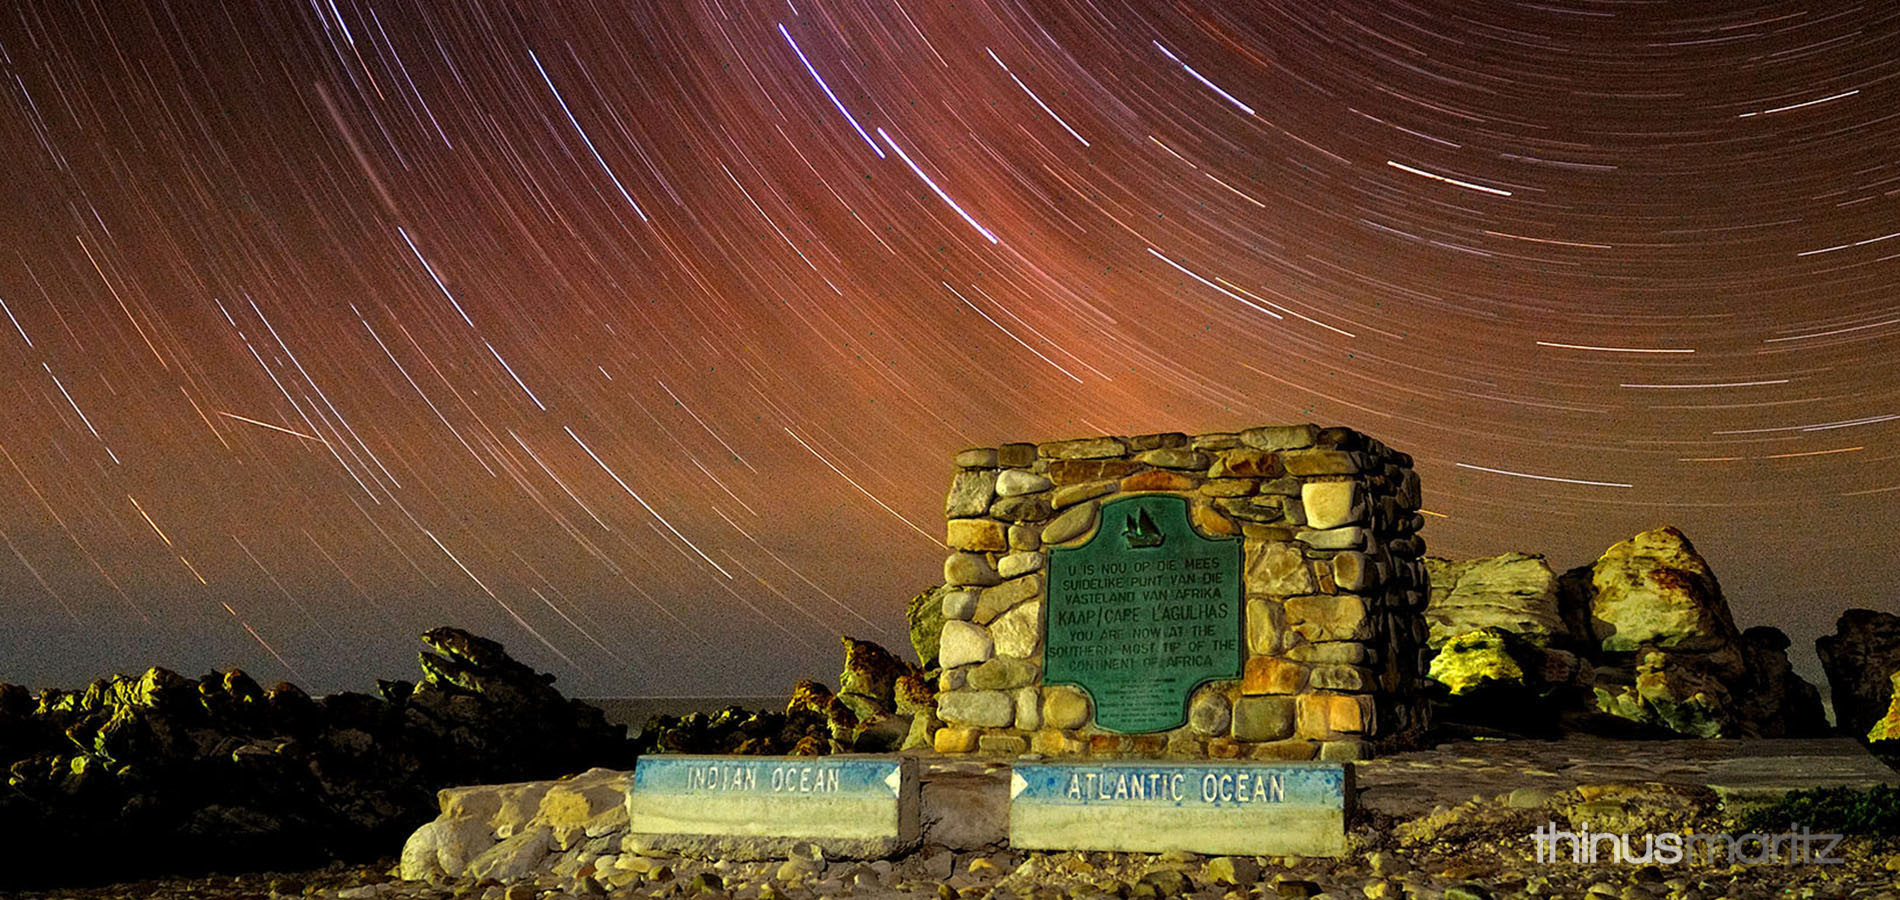 nightscape-cape-agulhas-startrails-southernmost-tip